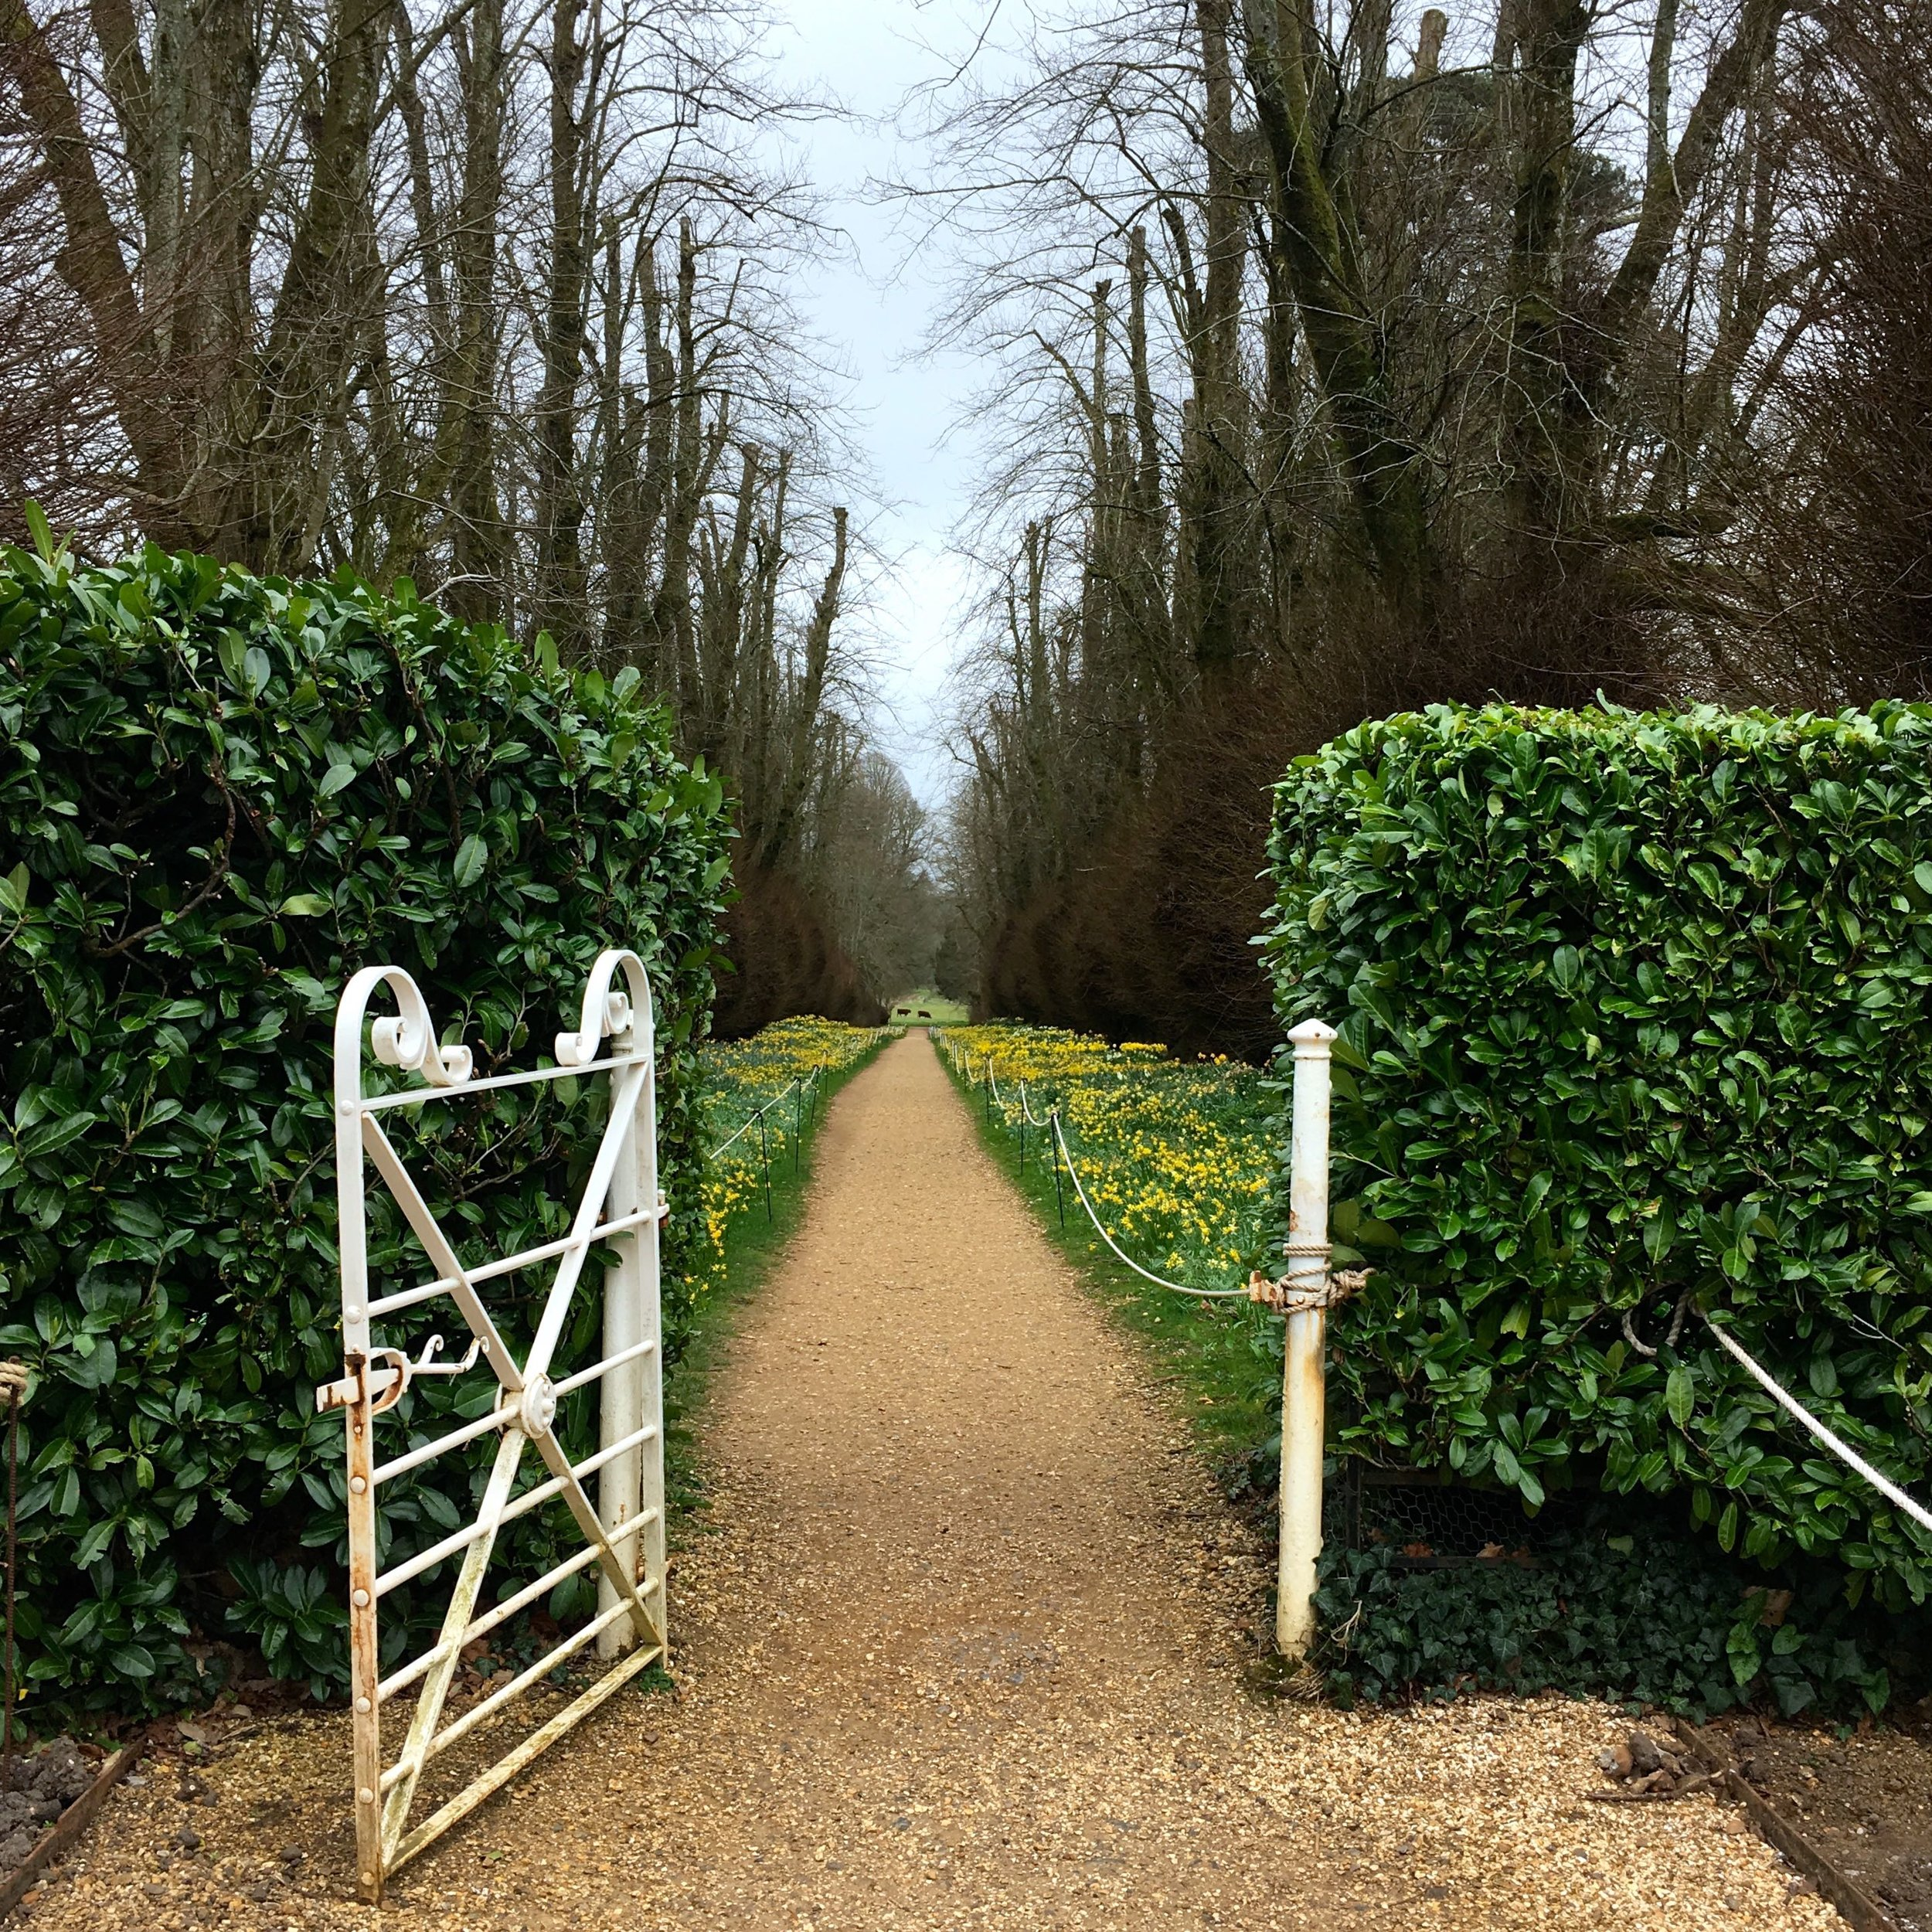 Heading through the gate into the Lime Avenue at Kingtson Lacy in Dorset